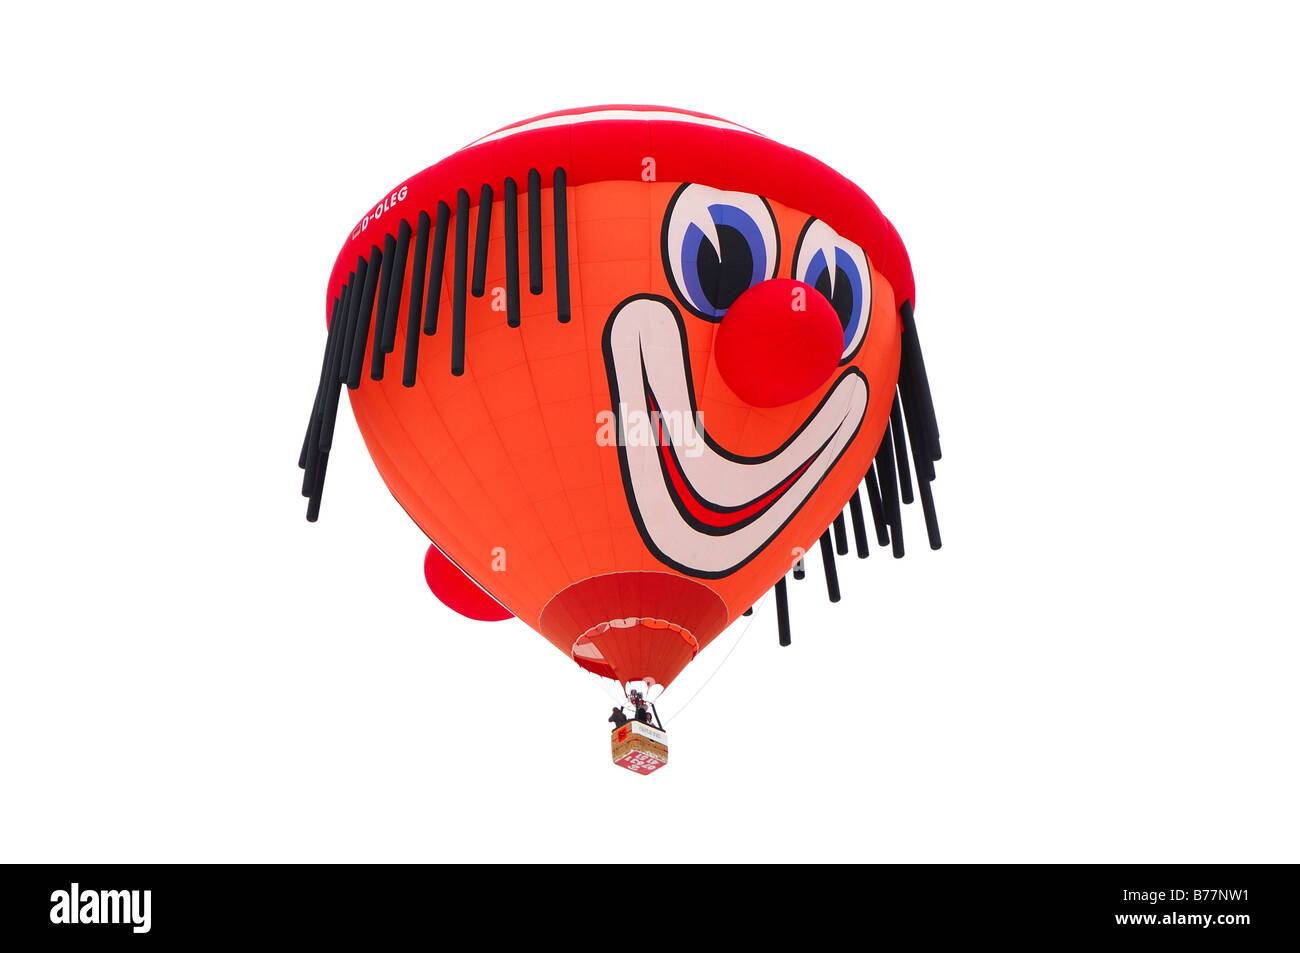 Hot-air balloon in flight, special clown shape, Schroeder fire balloons Clown SS, hot-air balloon, International Stock Photo